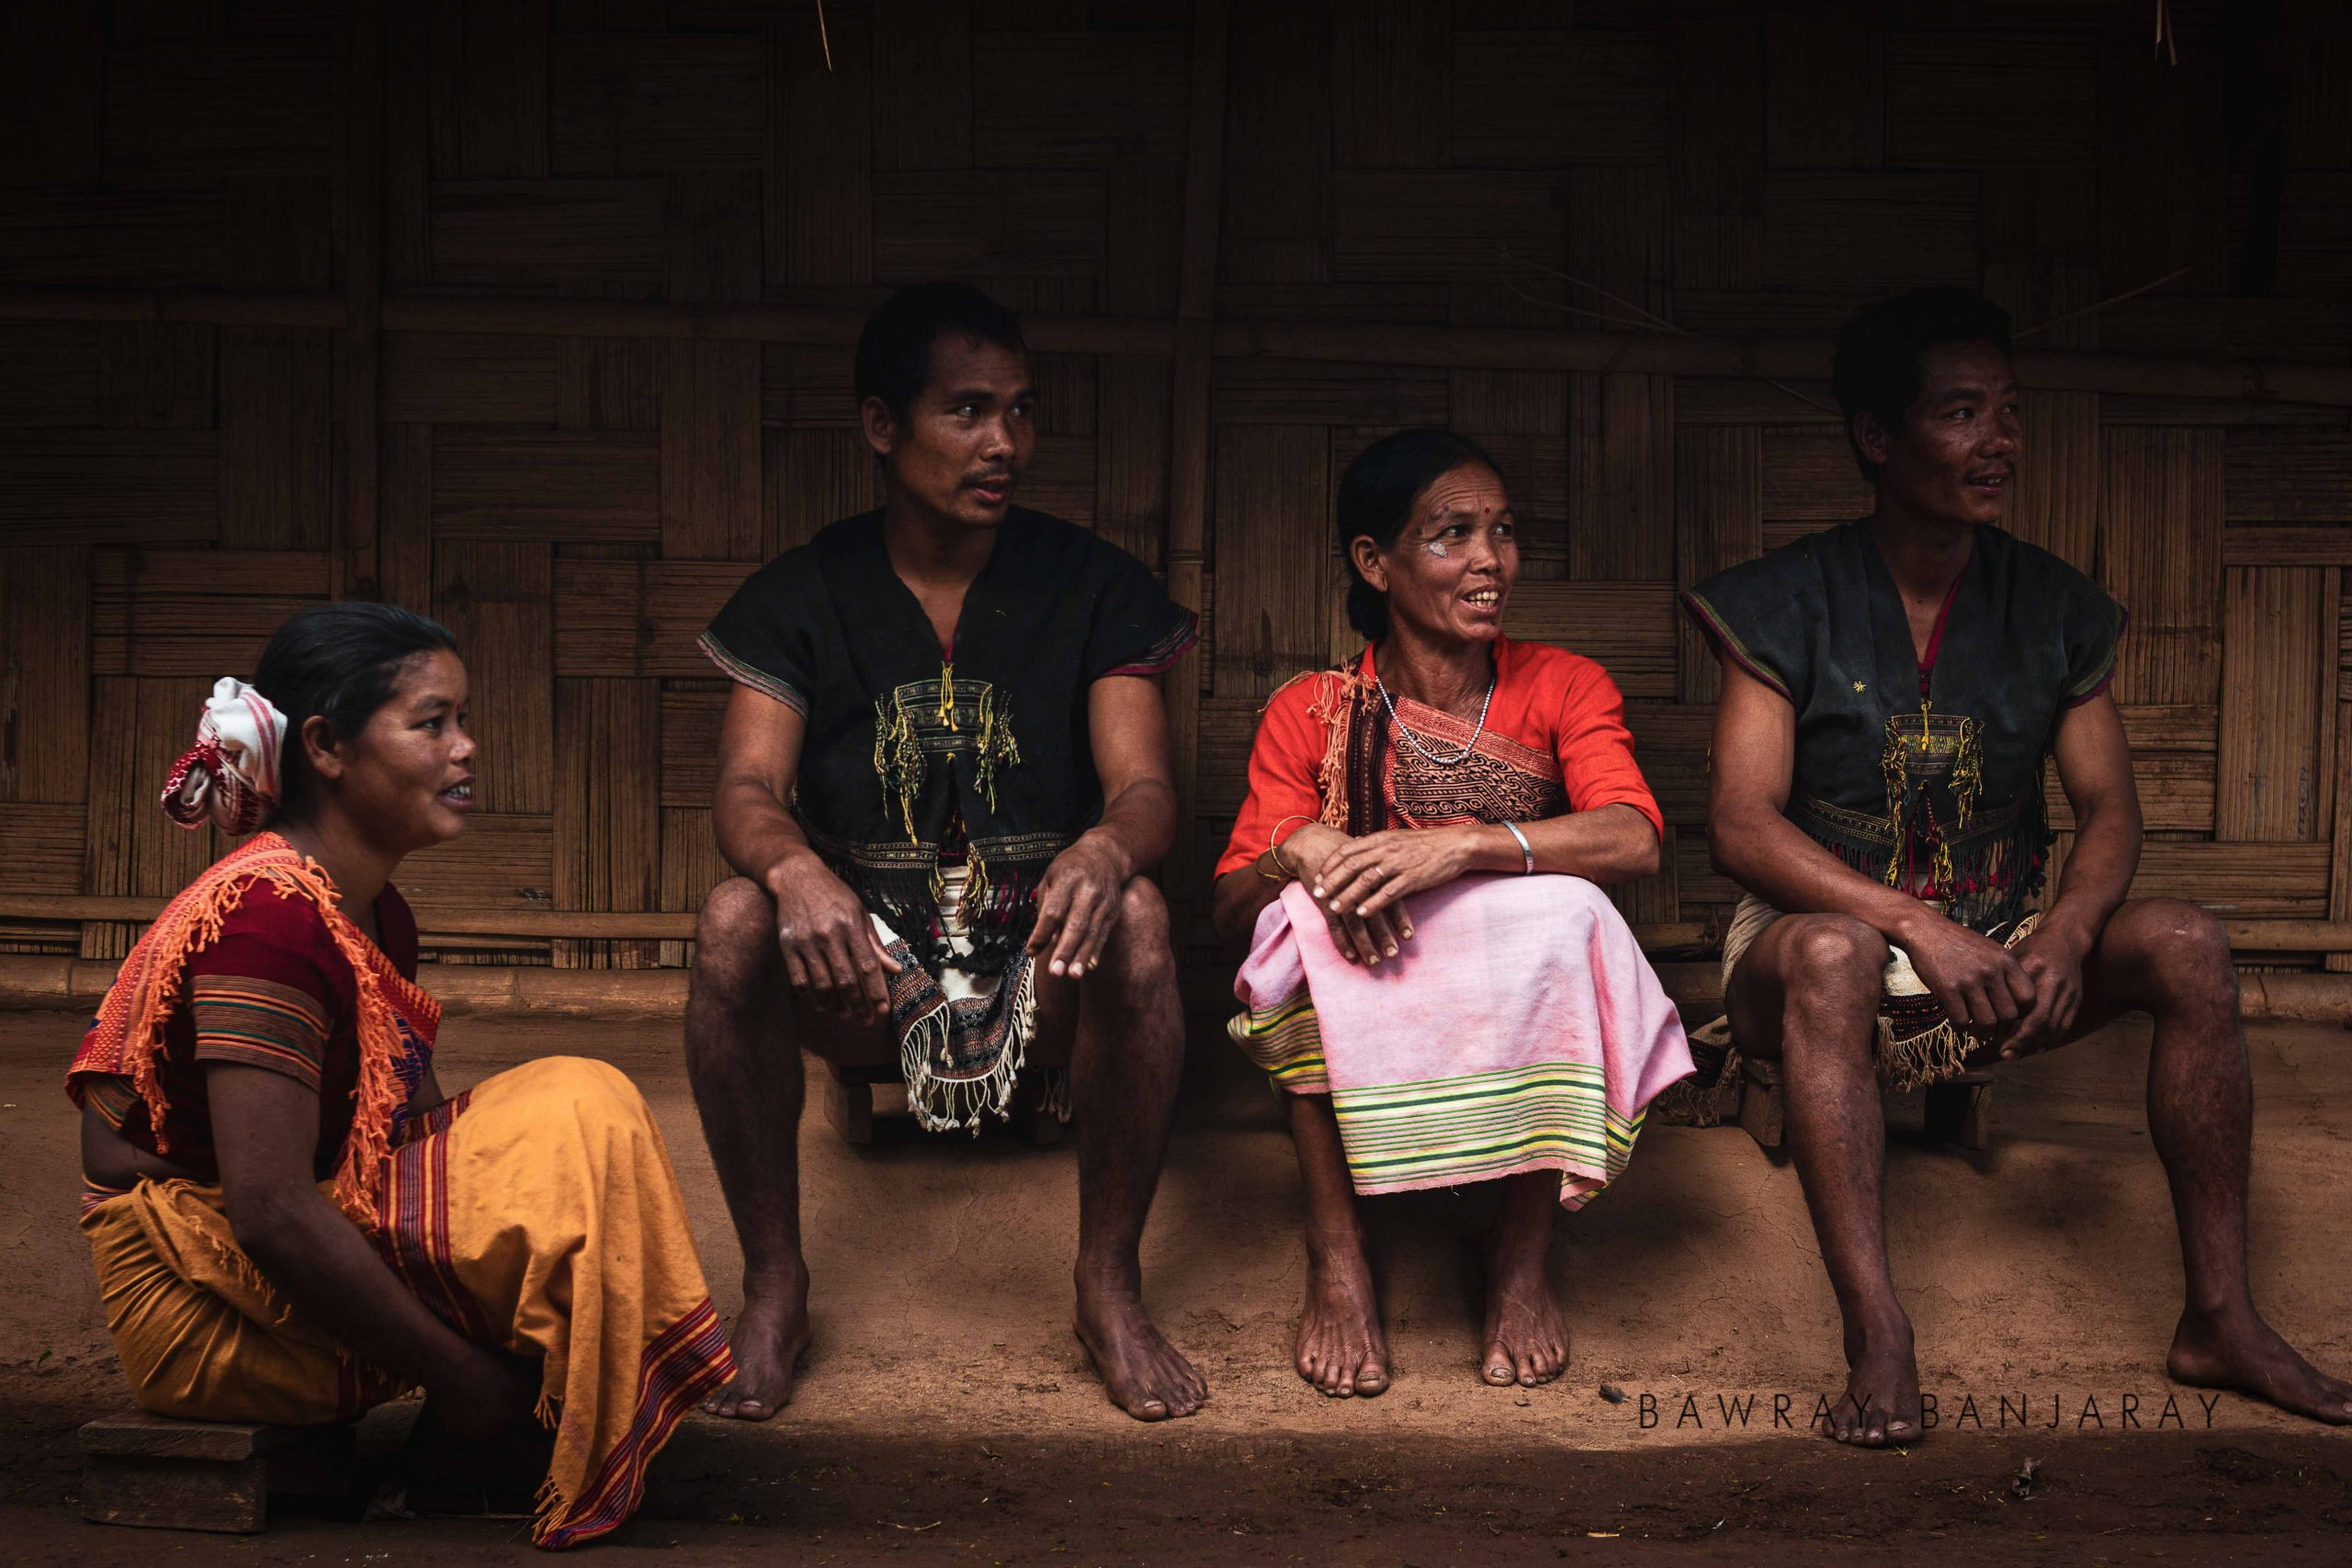 People of Umswai Village in Asam